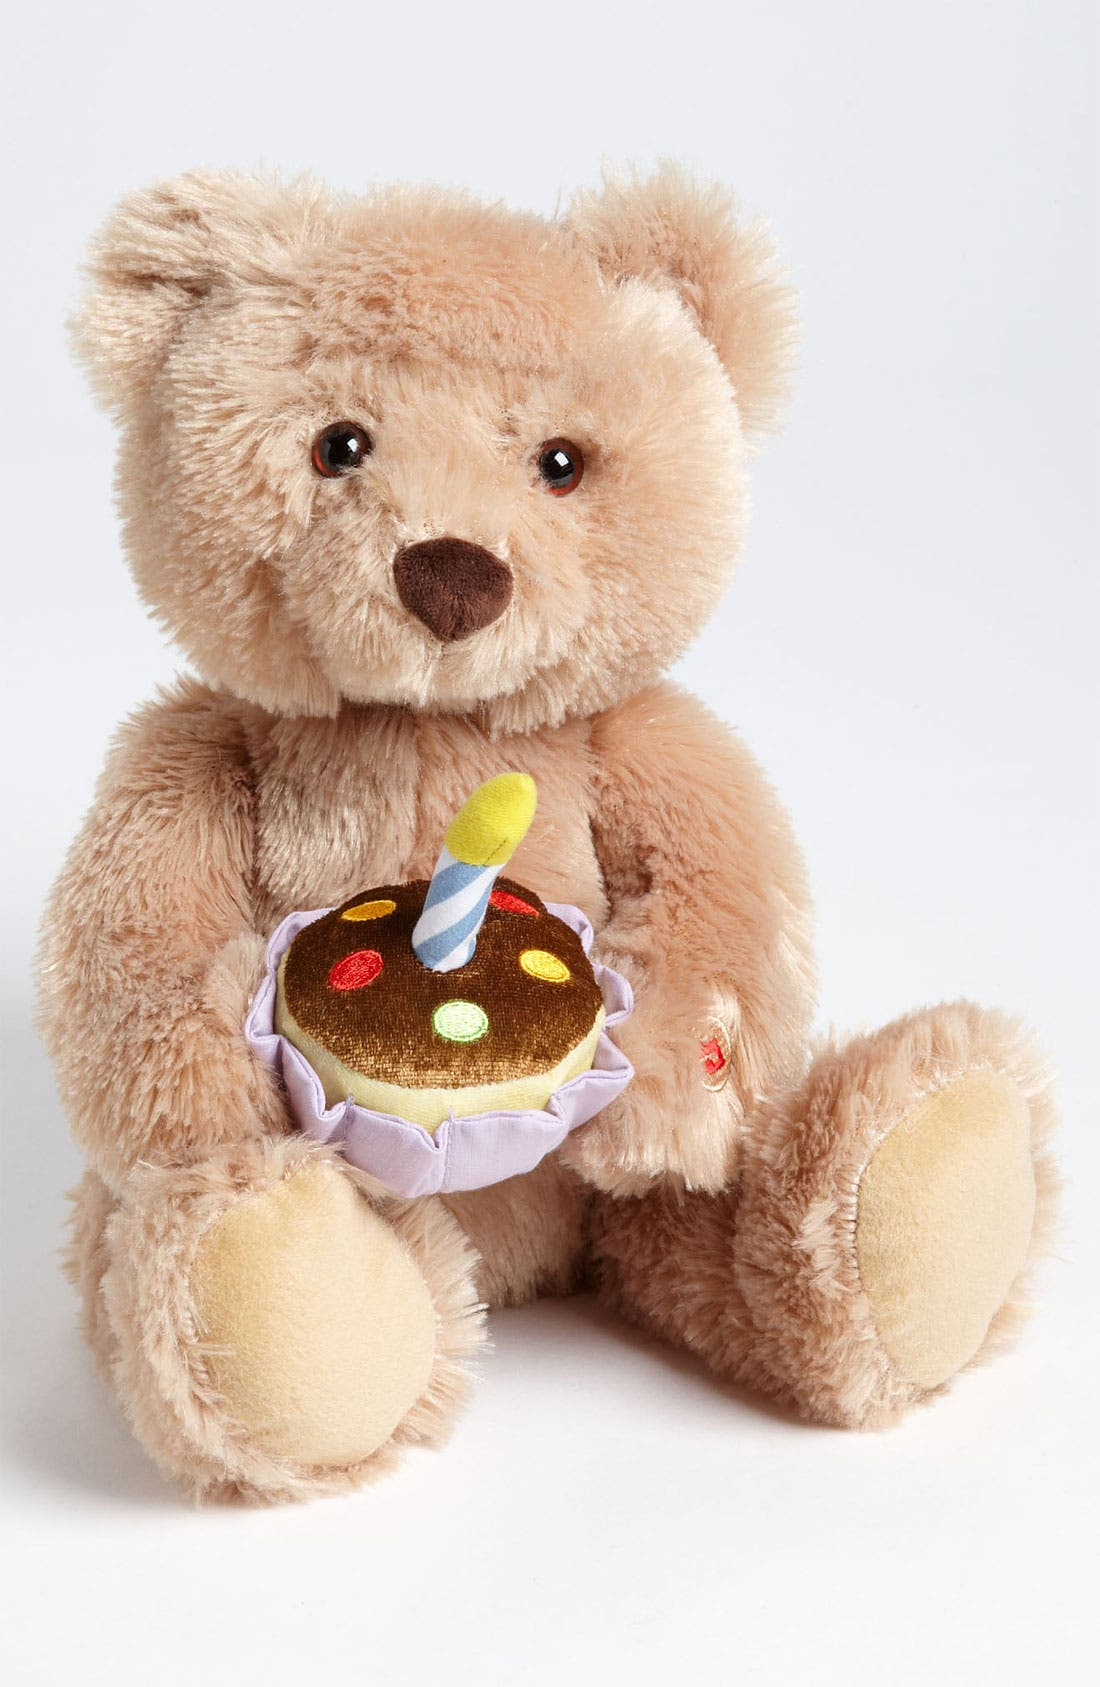 Alternate Image 1 Selected - Gund 'Happy Birthday - Bear' Stuffed Animal